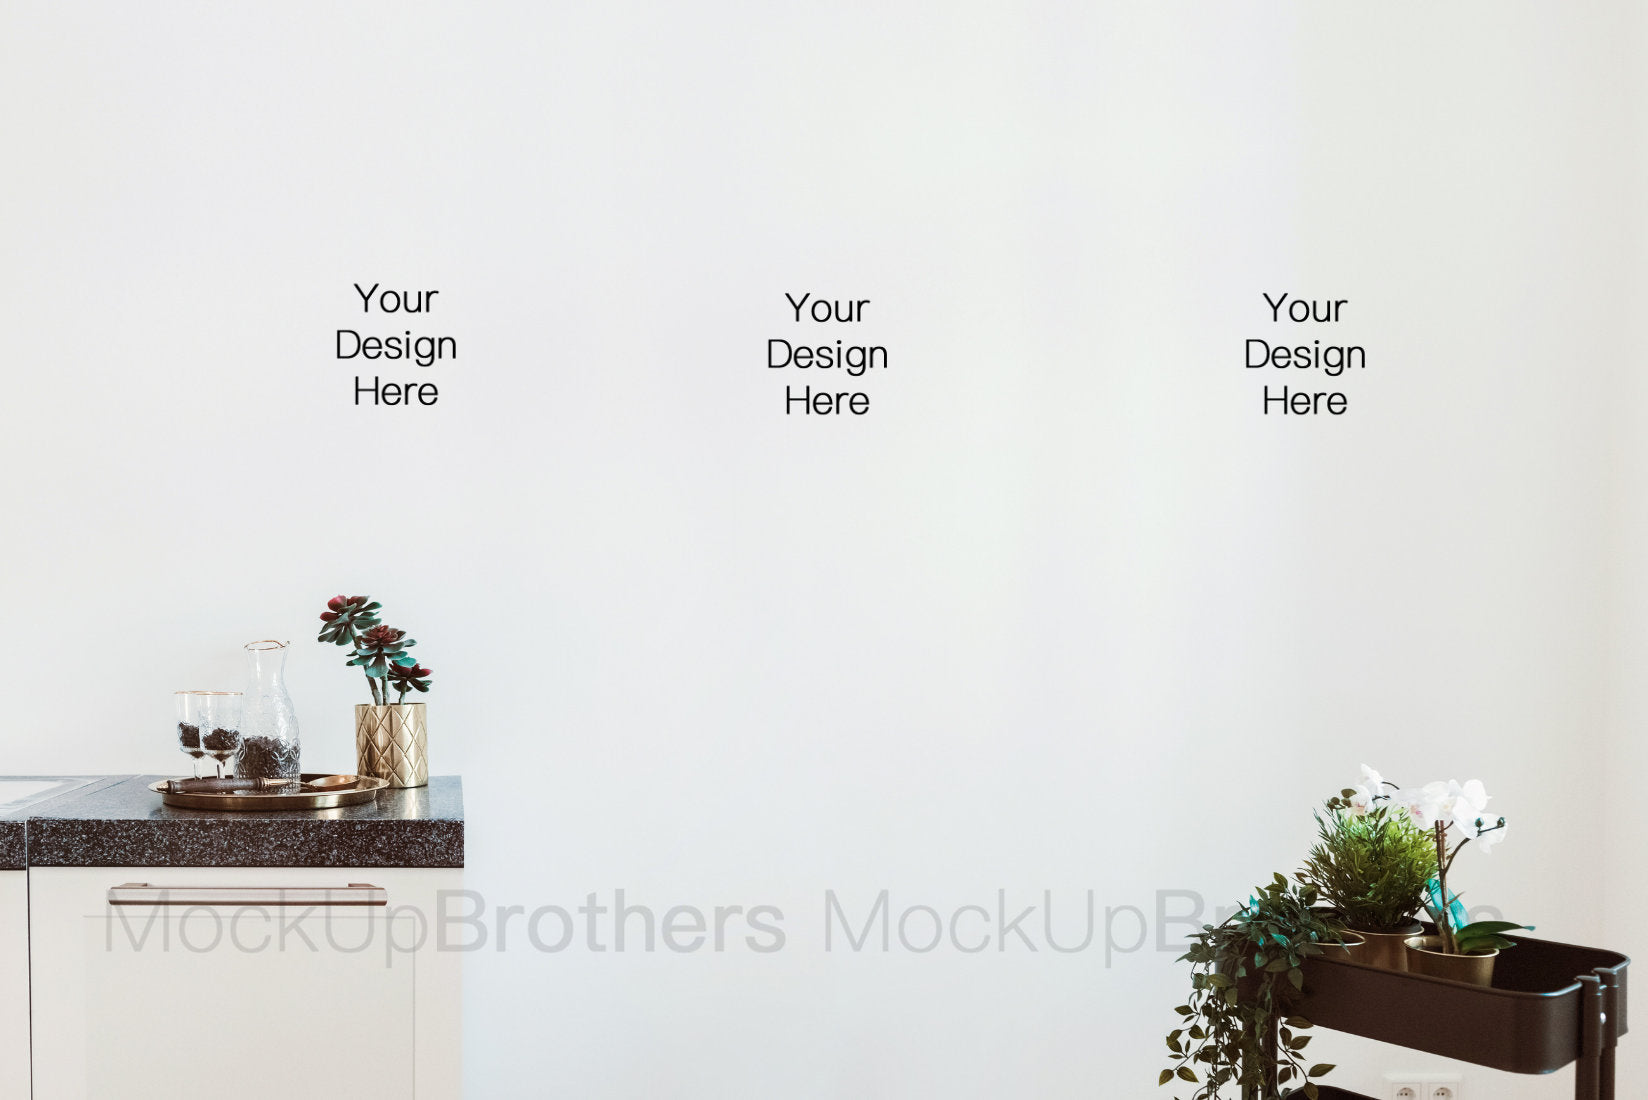 Kitchen interior stock photography by Mockup Brothers